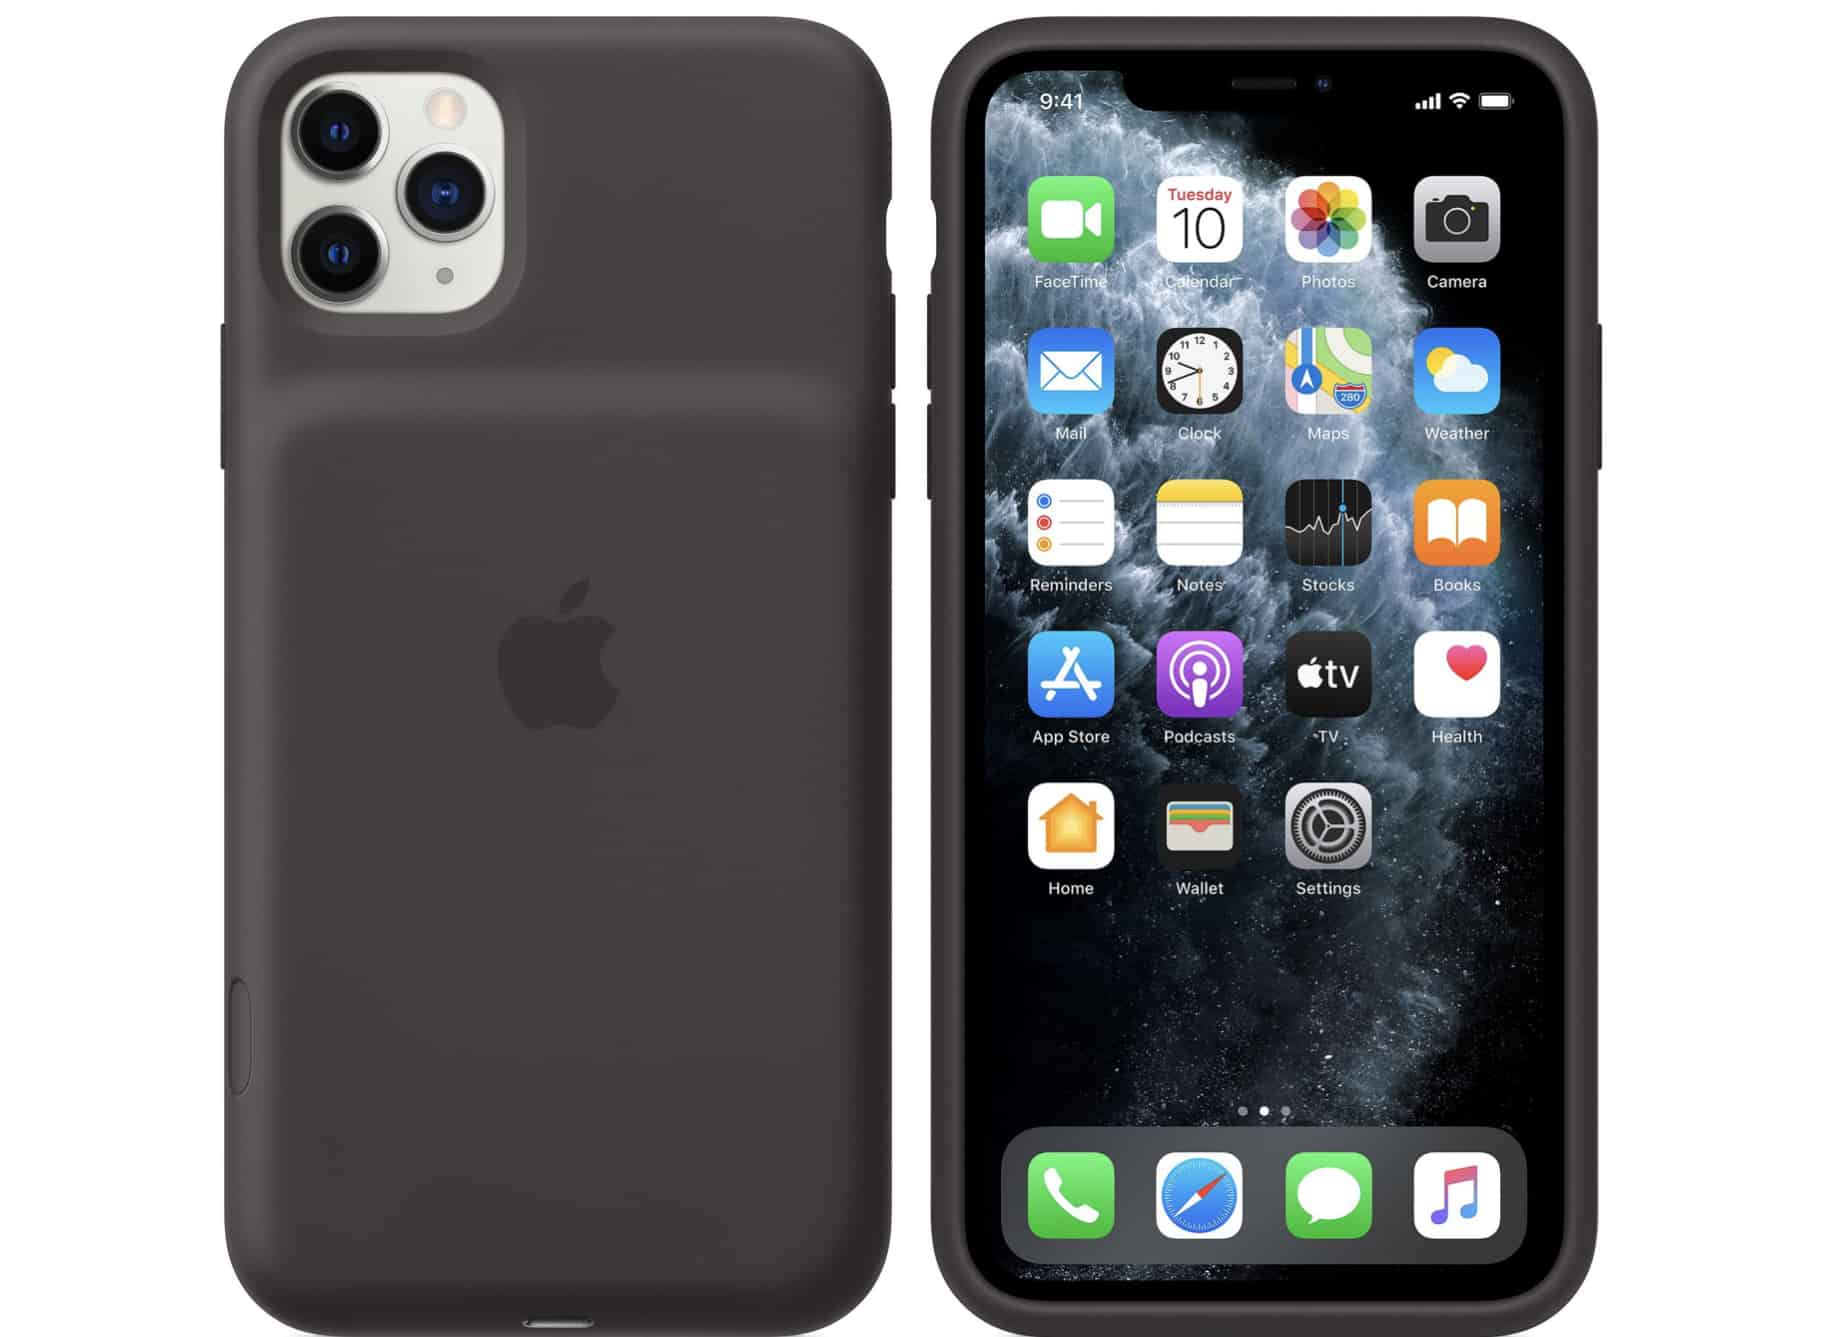 iPhone 11 / 11 Pro / 11 Pro Max smart battery case for sale